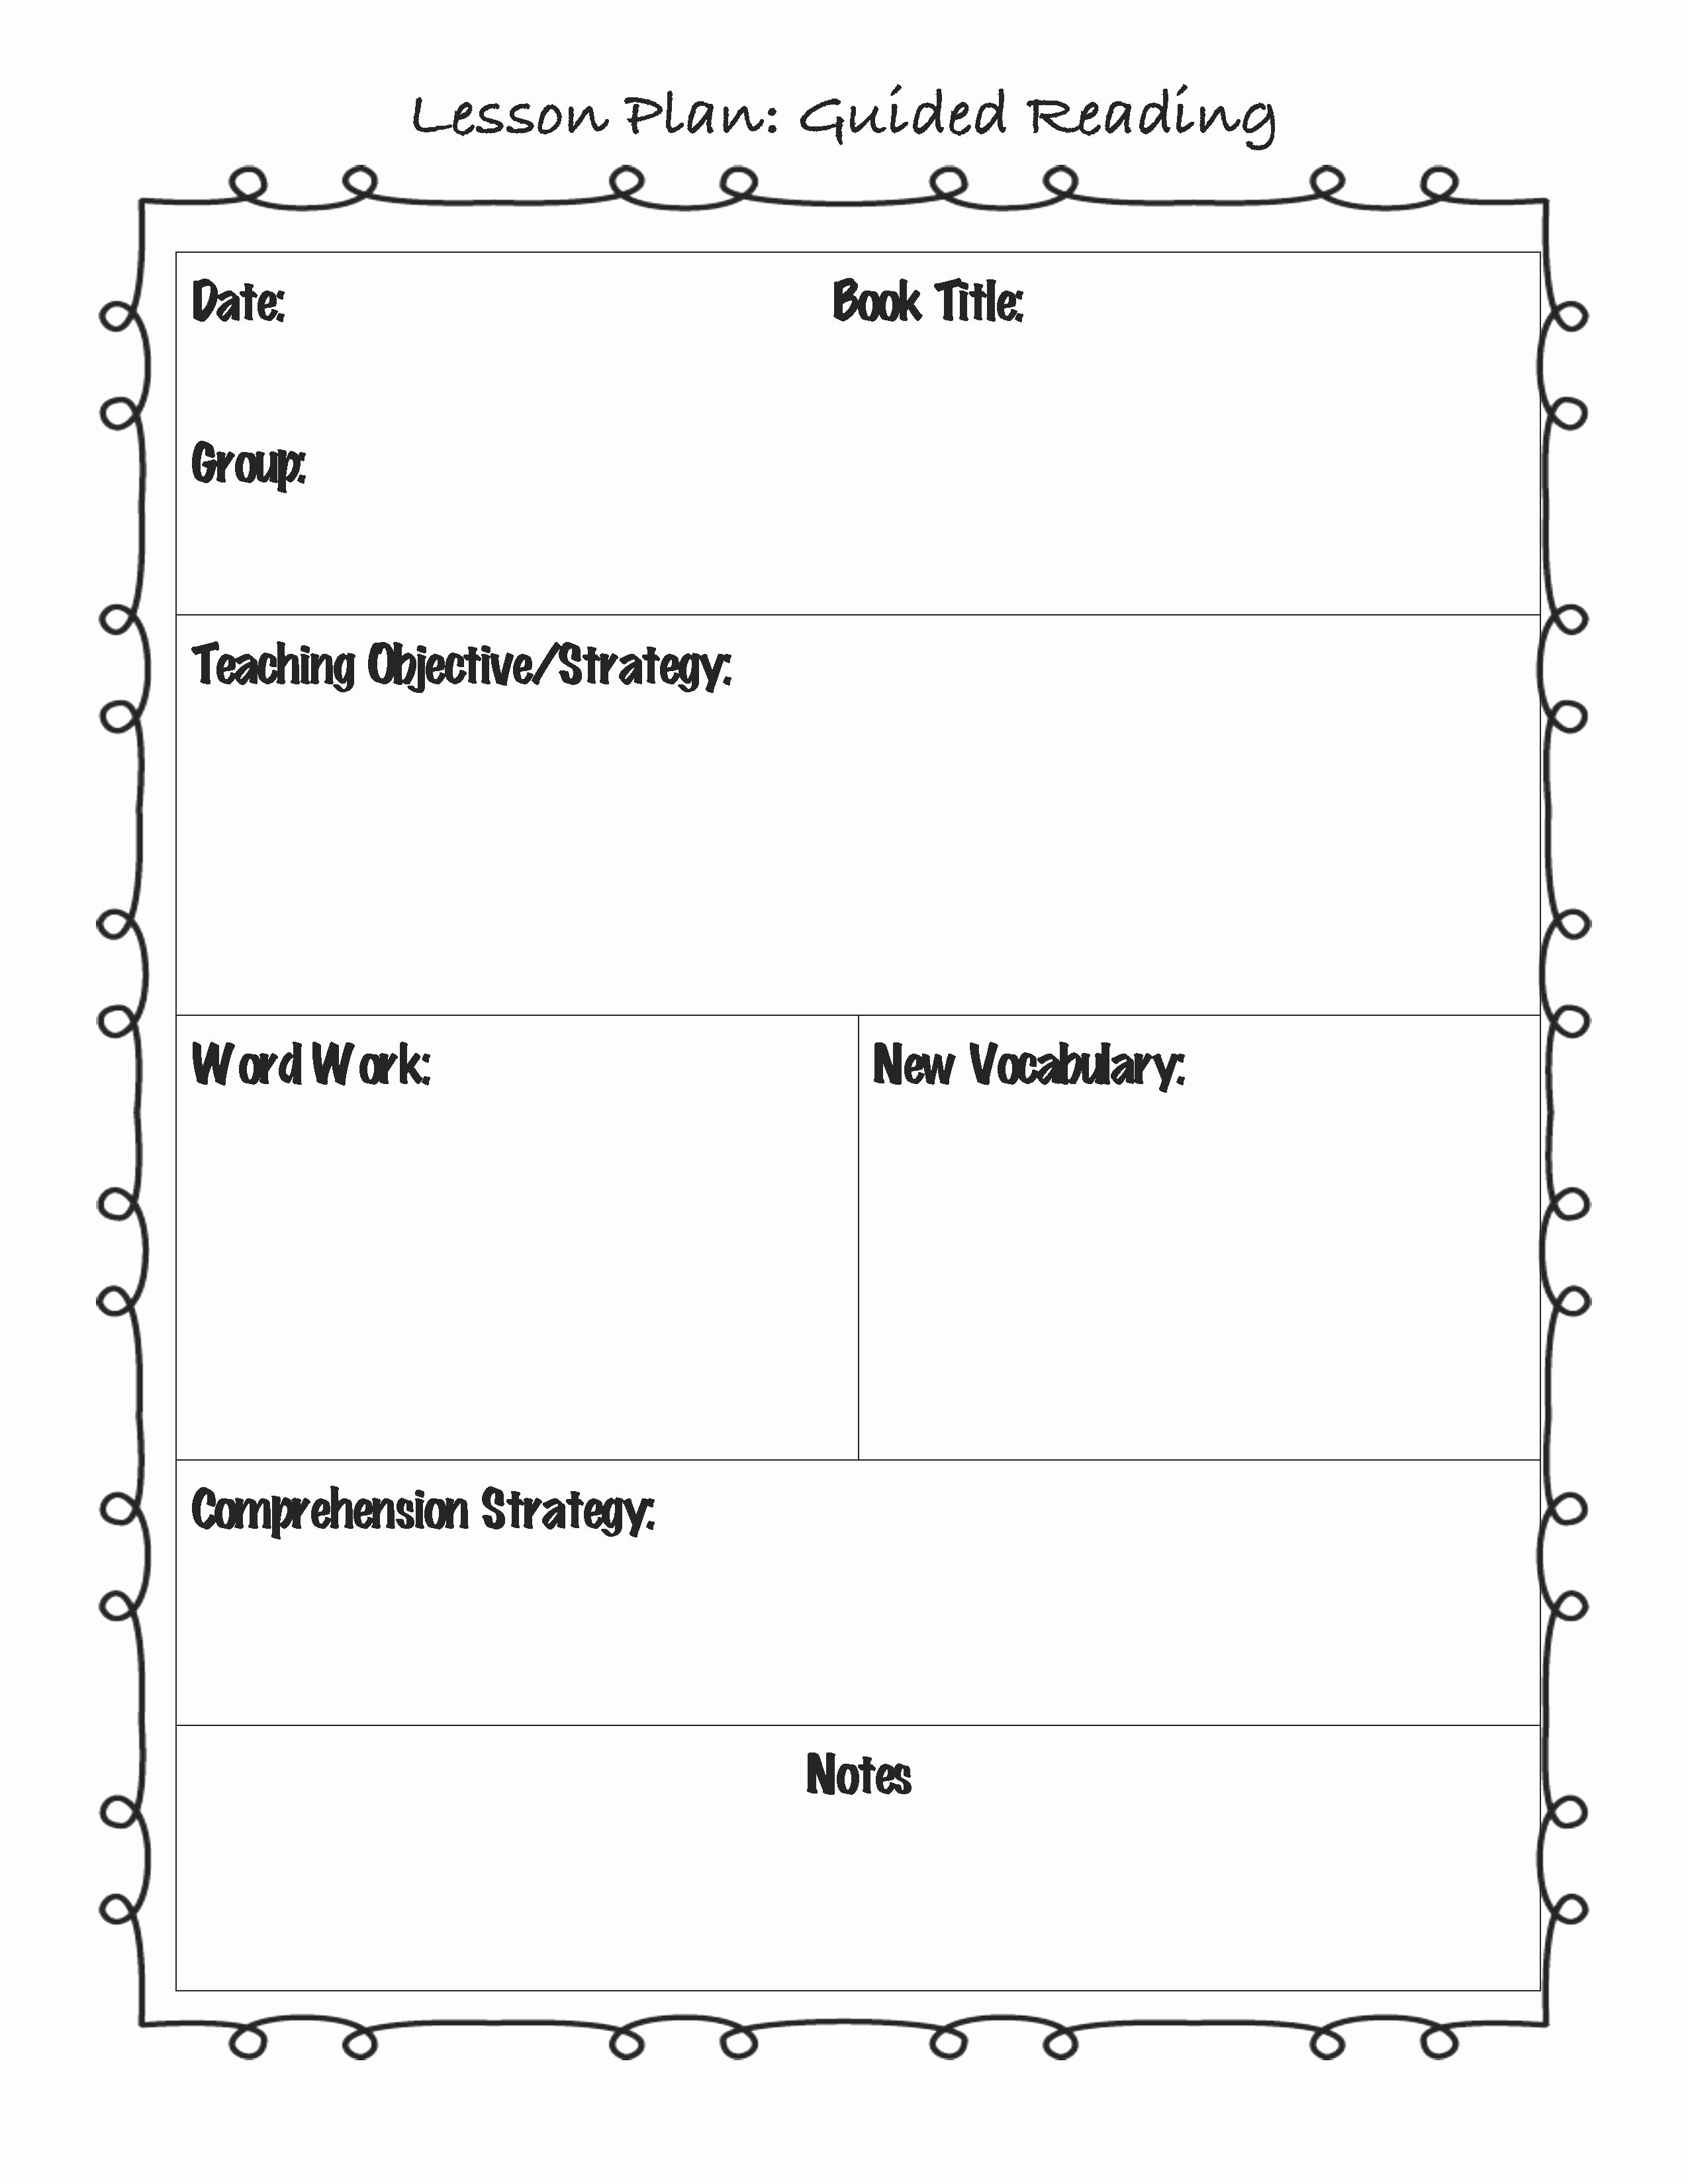 Best Lesson Plan Template Lovely Downloadable Lesson Plan Template A9dc007b0c50